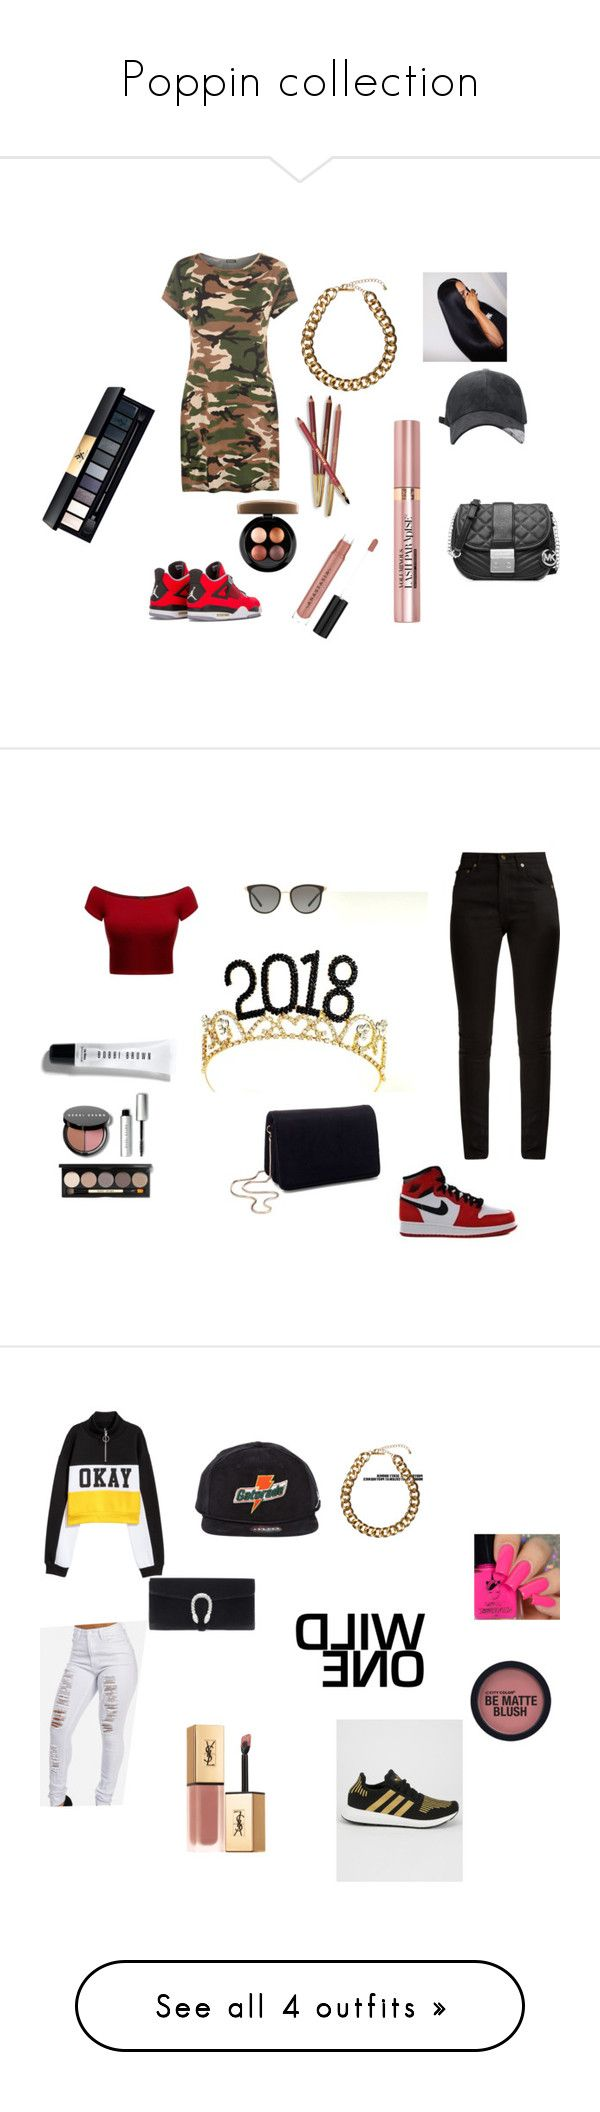 """""""Poppin collection"""" by killakay03 on Polyvore featuring WearAll, MICHAEL Michael Kors, Club Manhattan, John Lewis, L'Oréal Paris, Sisley, Anastasia Beverly Hills, MAC Cosmetics, Trendy and Yves Saint Laurent"""